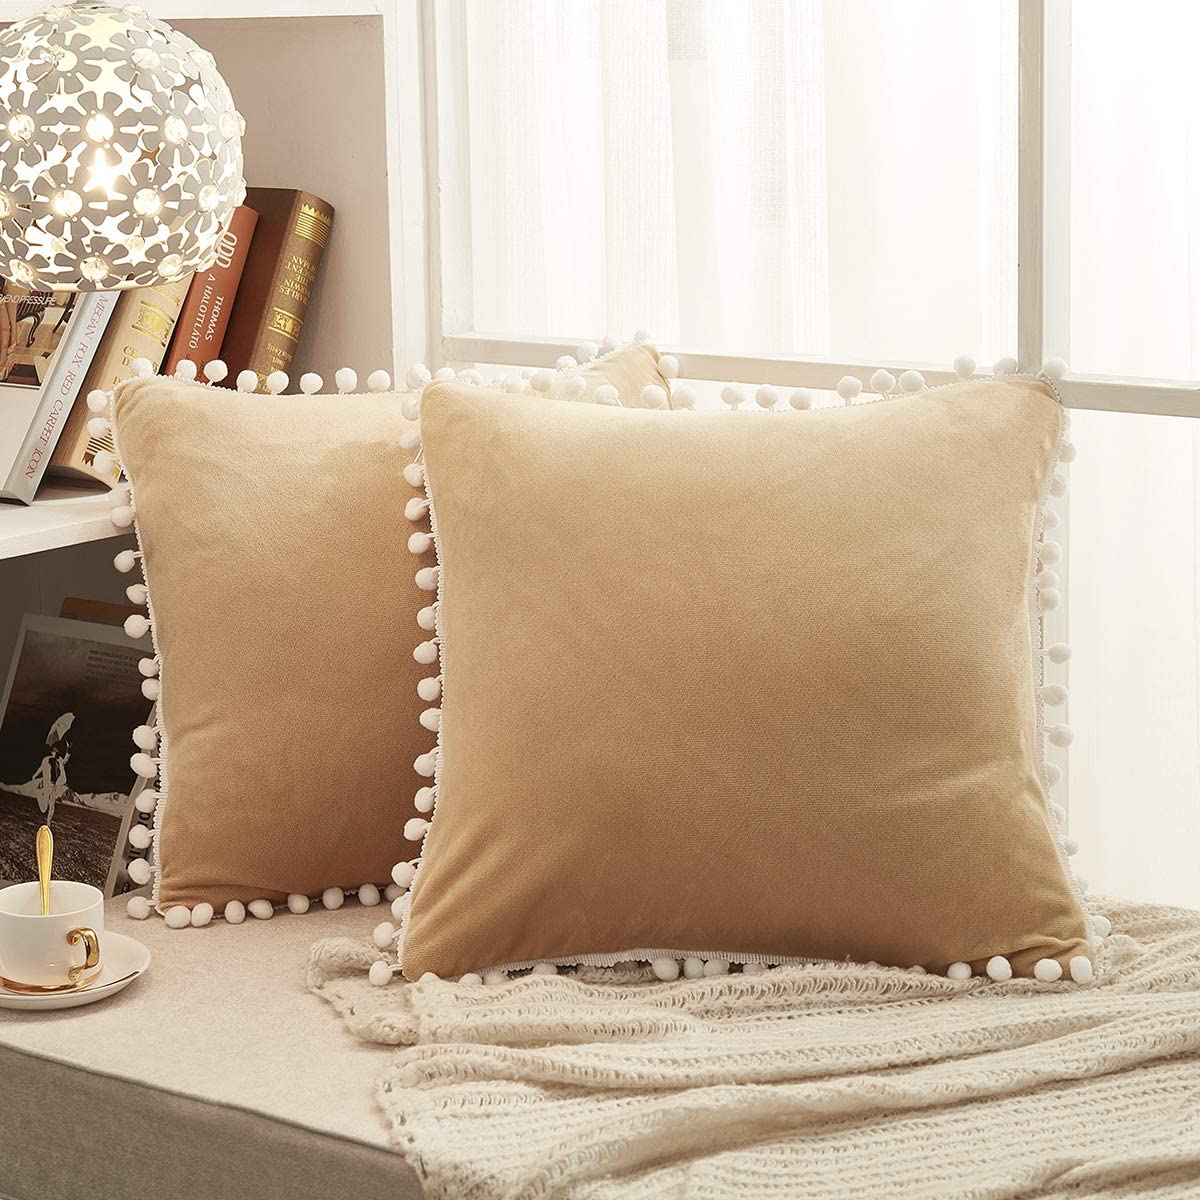 JAUXIO Soft Crystal Velvet Throw Pillow Covers 2 Pack with Pom Poms Decorative Fringes Solid Cushion Cover for Home Decor (Camel, 18